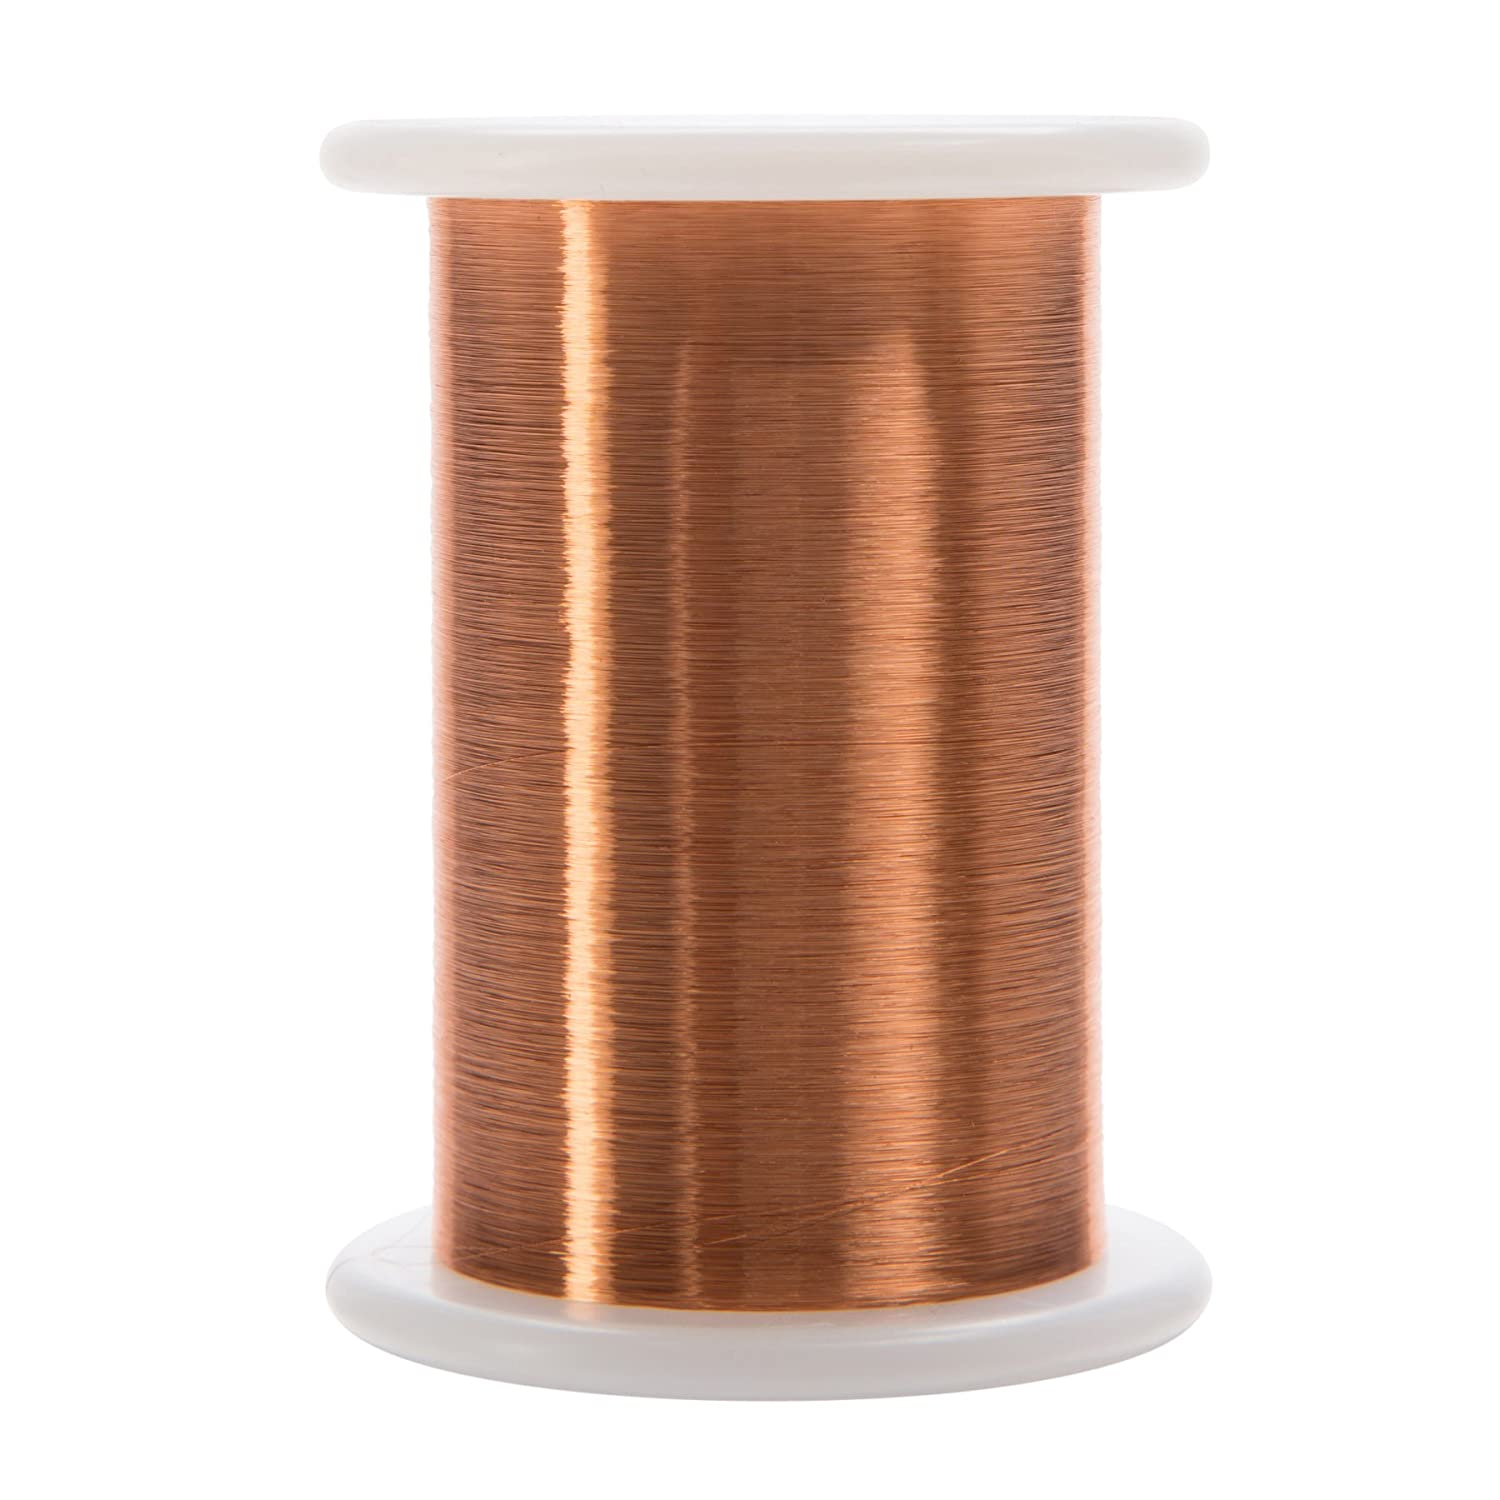 Remington Industries 42HNSP.125 Magnet Wire Enameled Copper Wire Wound 2 oz 6200 Length Natural 6200/' Length 0.0029 Diameter Remington Industries-Wire 0.0029 Diameter 42 AWG Heavy Build